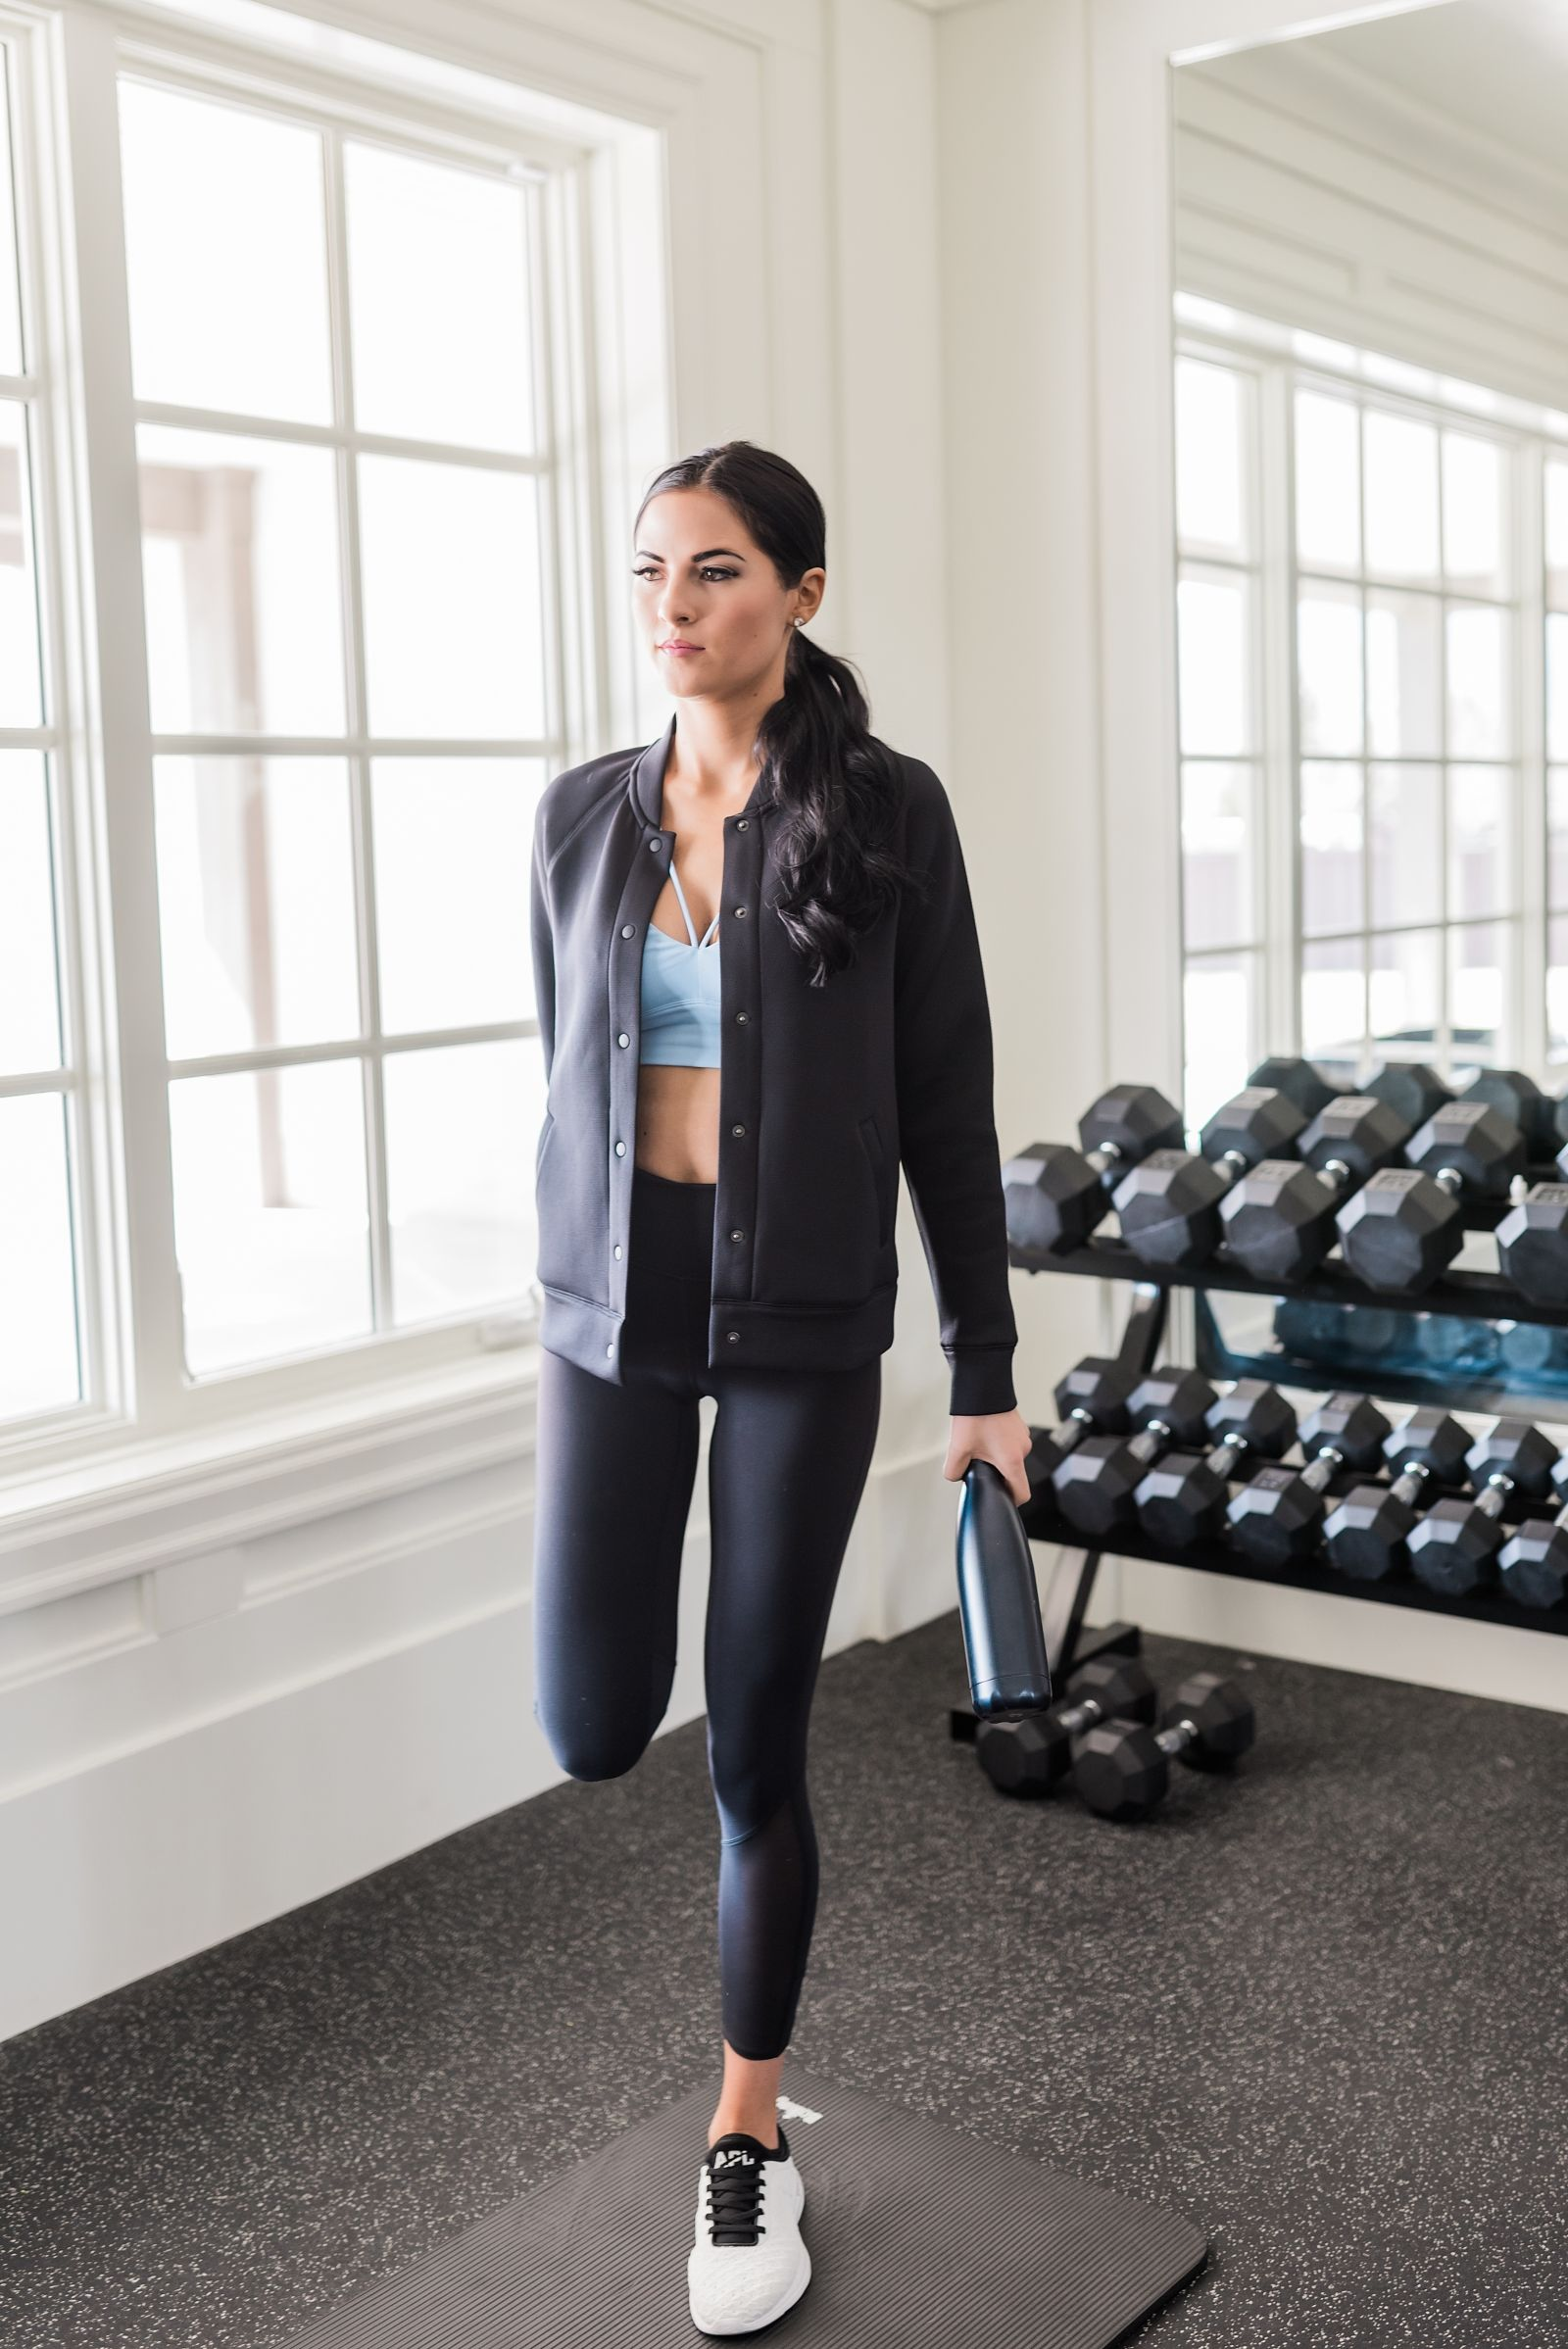 Wear to what to go workout recommend to wear in winter in 2019